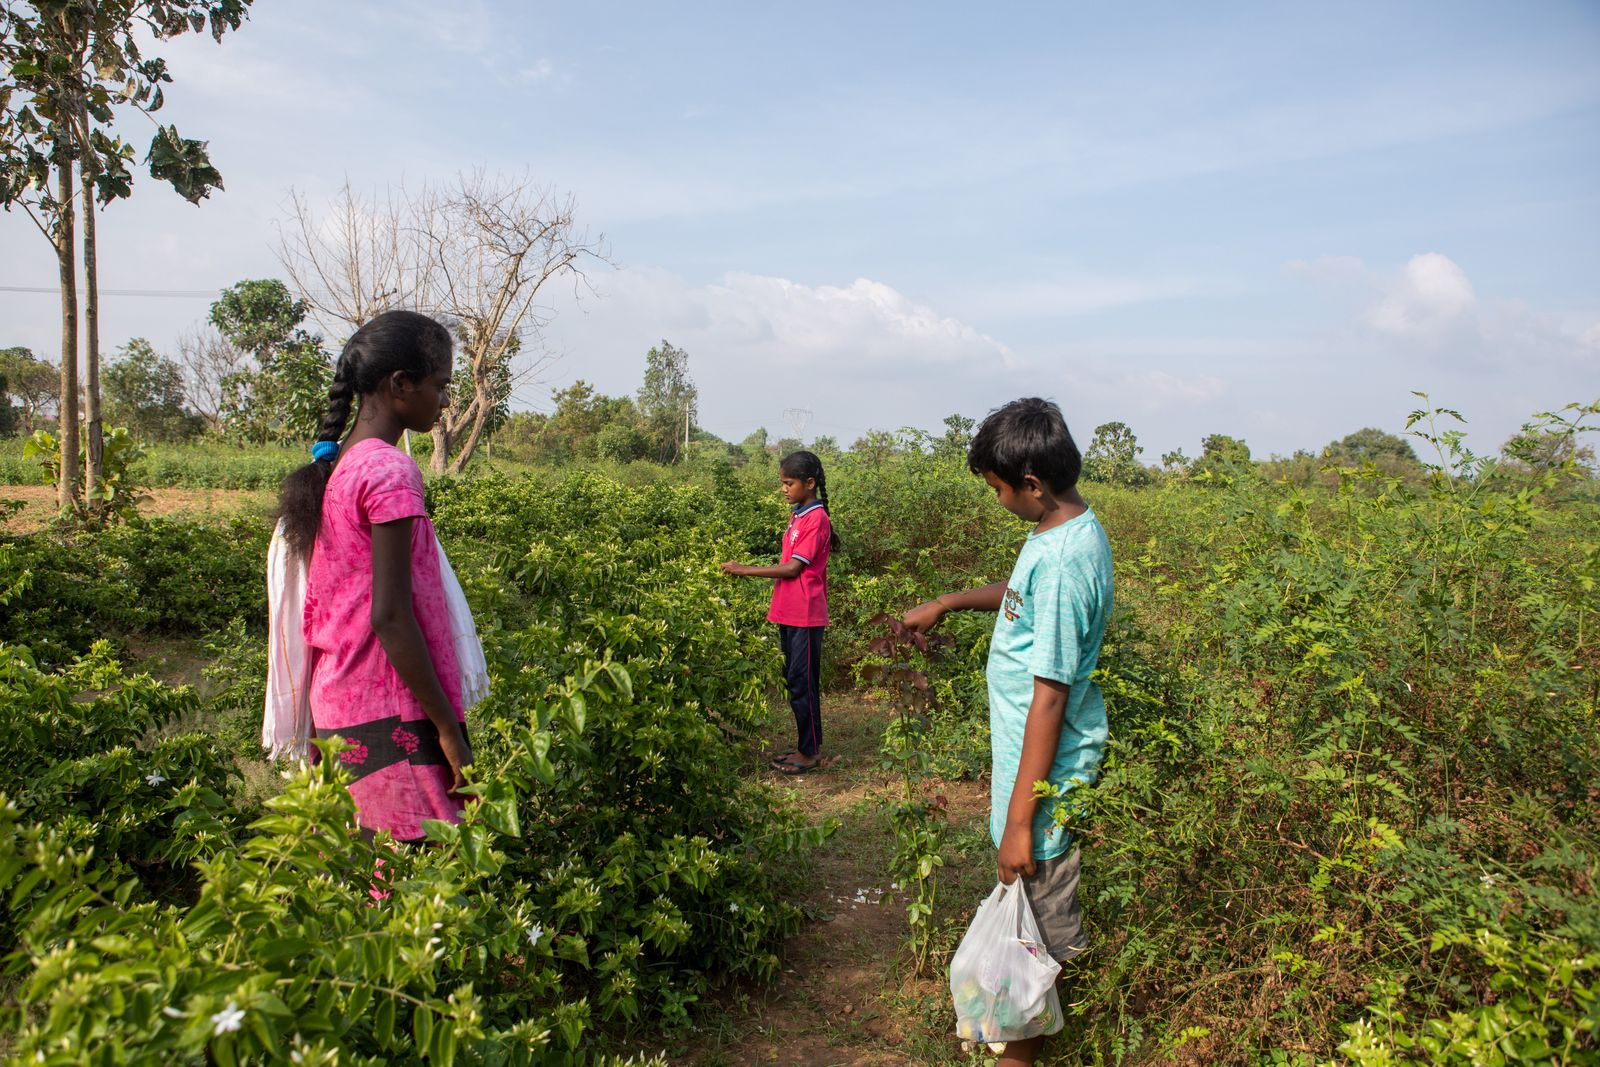 12th Jan 2021, Thalavedu village, Tiruttani Thaluk,Thiruvallur district in Tamil Nadu, India. Mythali 13, Sriram 12 and Sabita 14 pluck Jasmine at the farm. Small farmer families often need the extra pair of hands and mobilise their own children to save on costs. Farmers who apply pesticides do so with little or no protective clothing. They spray toxic chemicals wearing only a traditional wraparound (lungi). This lack of adequate protection extends to children, who aside from plucking flowers, sometimes mix pesticides with their bare hands. Some of the symtoms expericenced by the children and their parents due to the pesticides were dizziness, headache, skin rashes, fatigue, and breathing problems. Photographer: Samyukta Lakshmi.